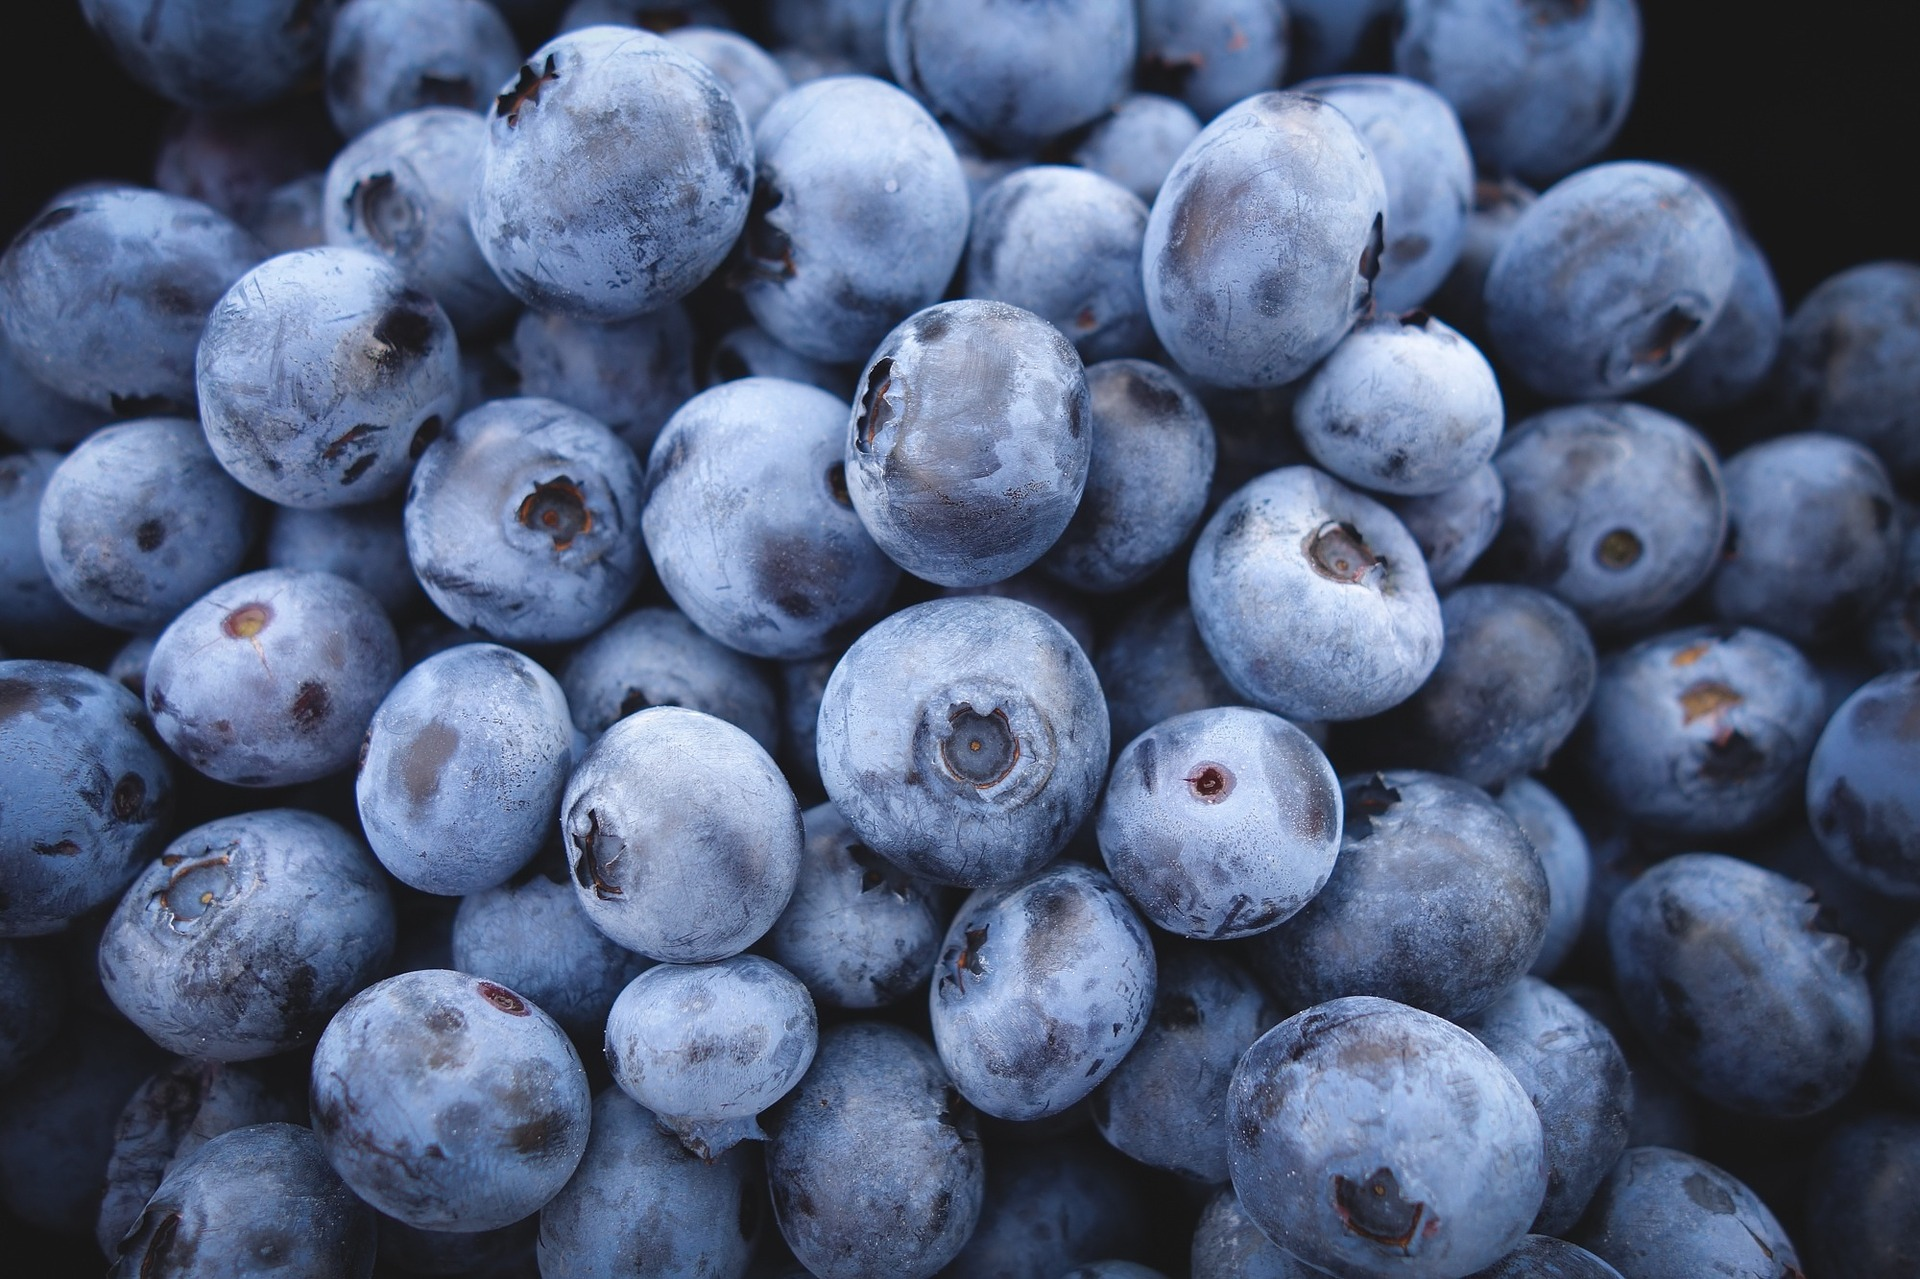 Paupack Blueberry Farm:  184 Gumbletown Road, Paupack, PA 18451   (570) 226-9702